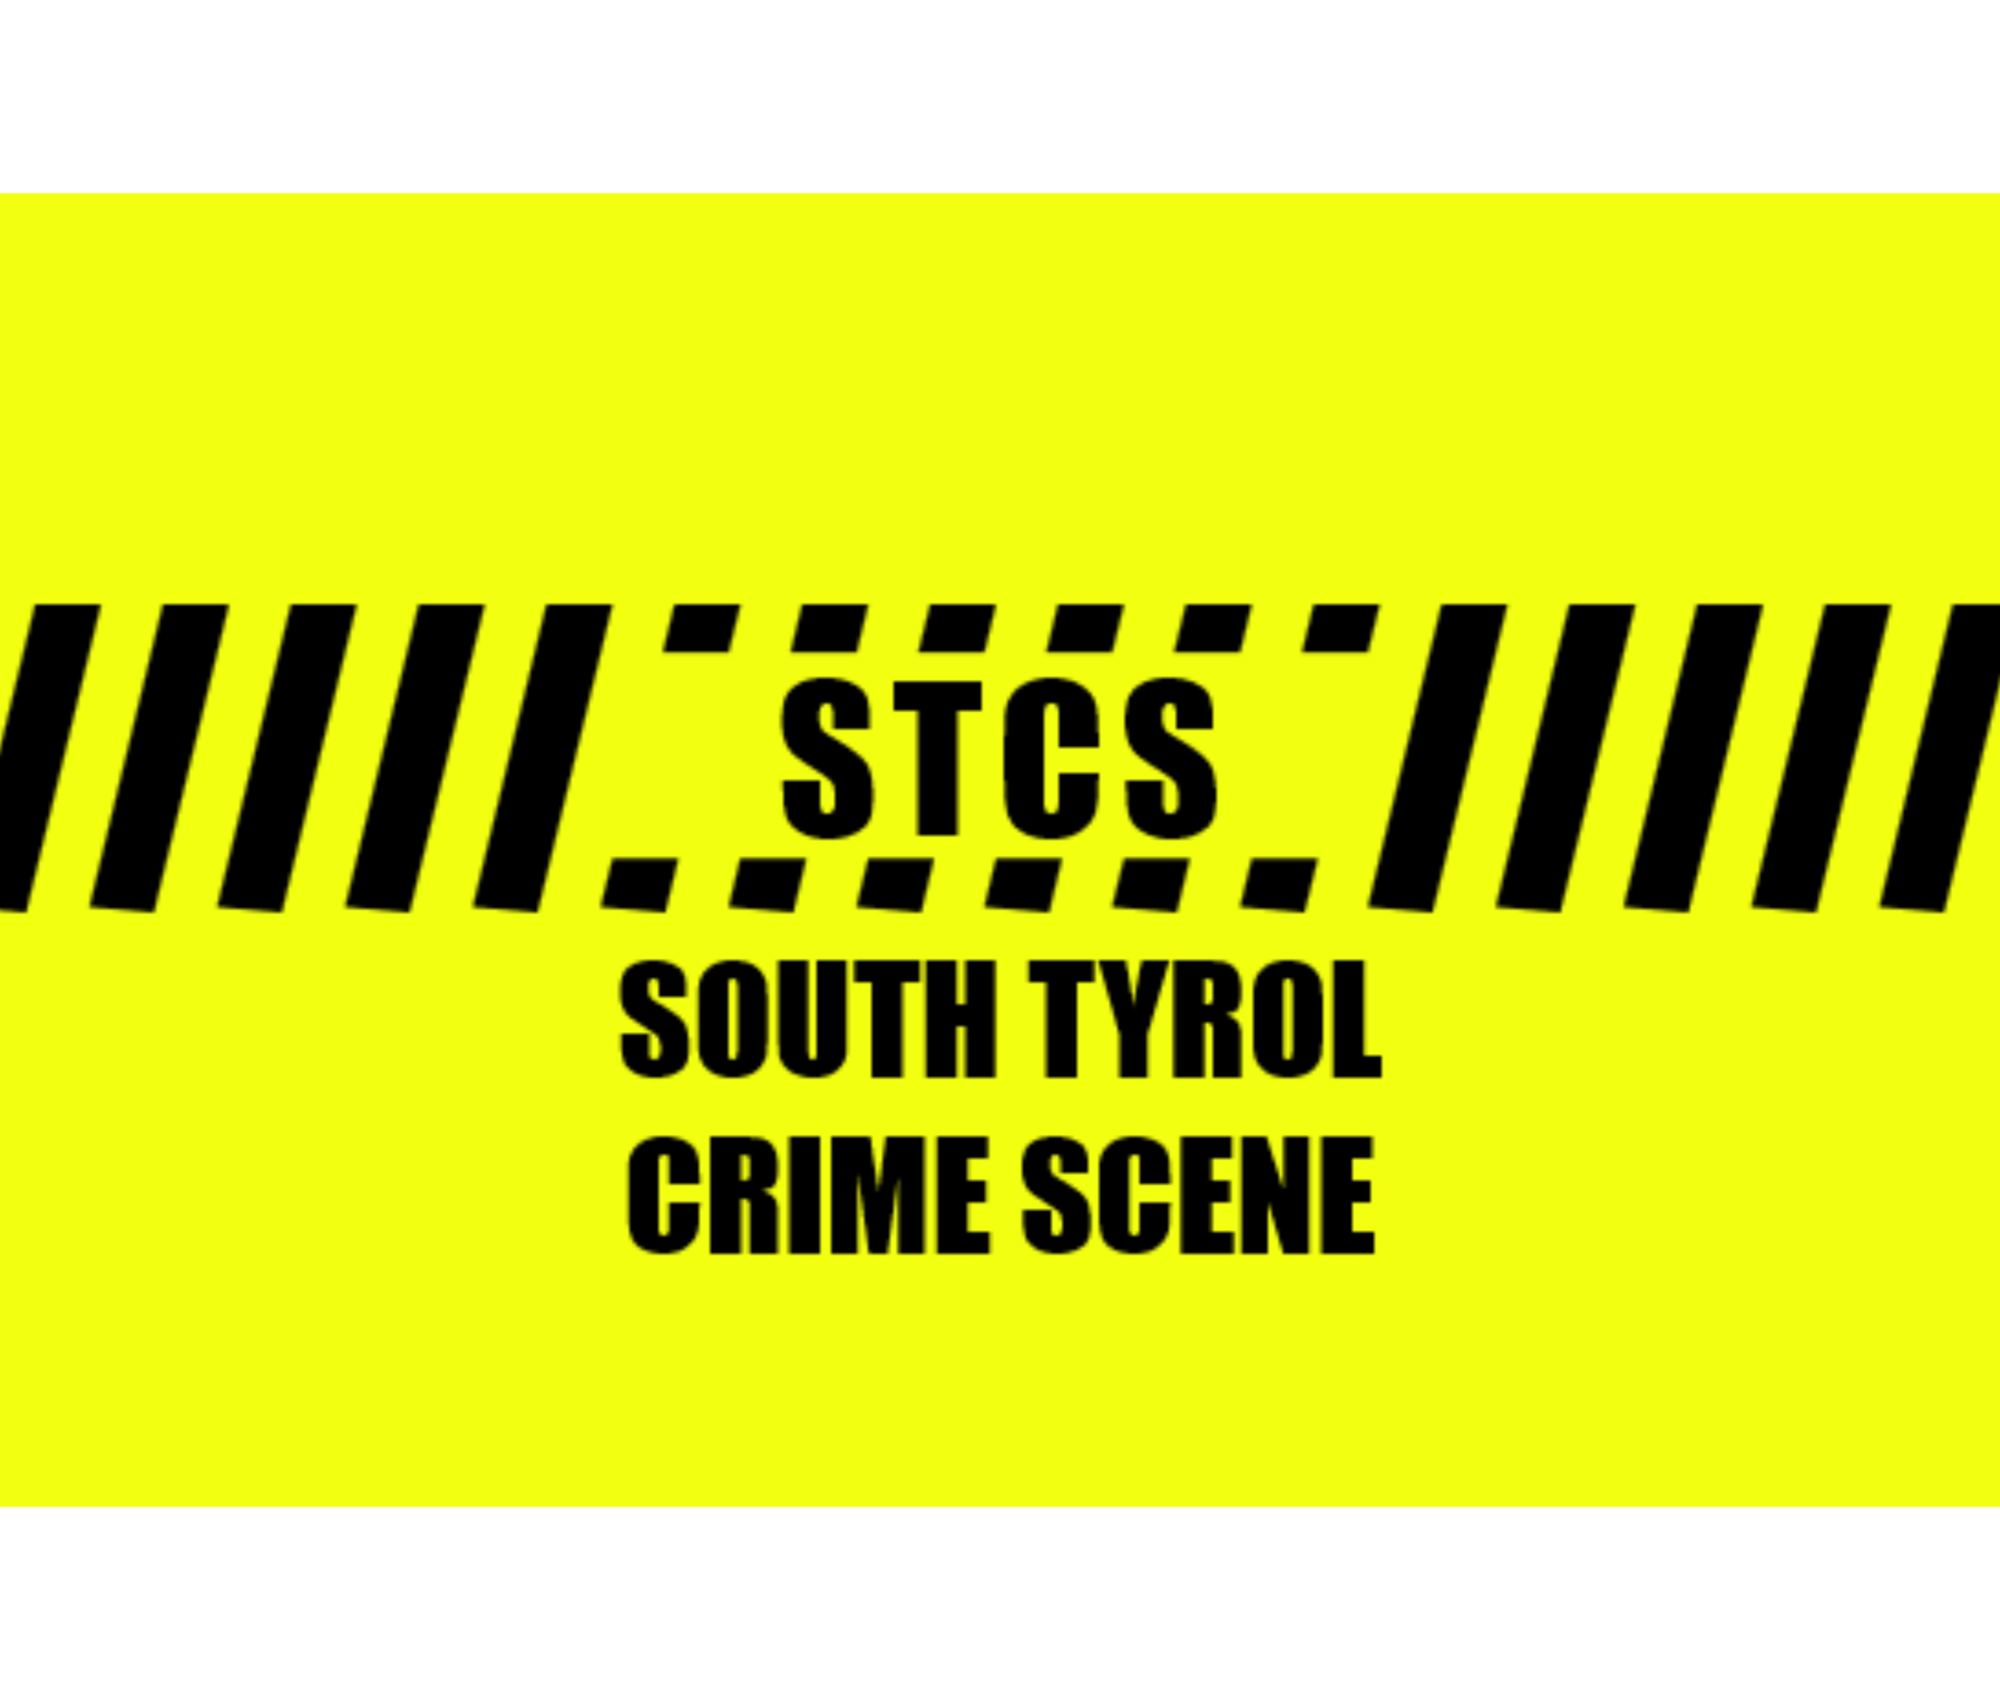 South Tyrol Crime Scene (STCS)